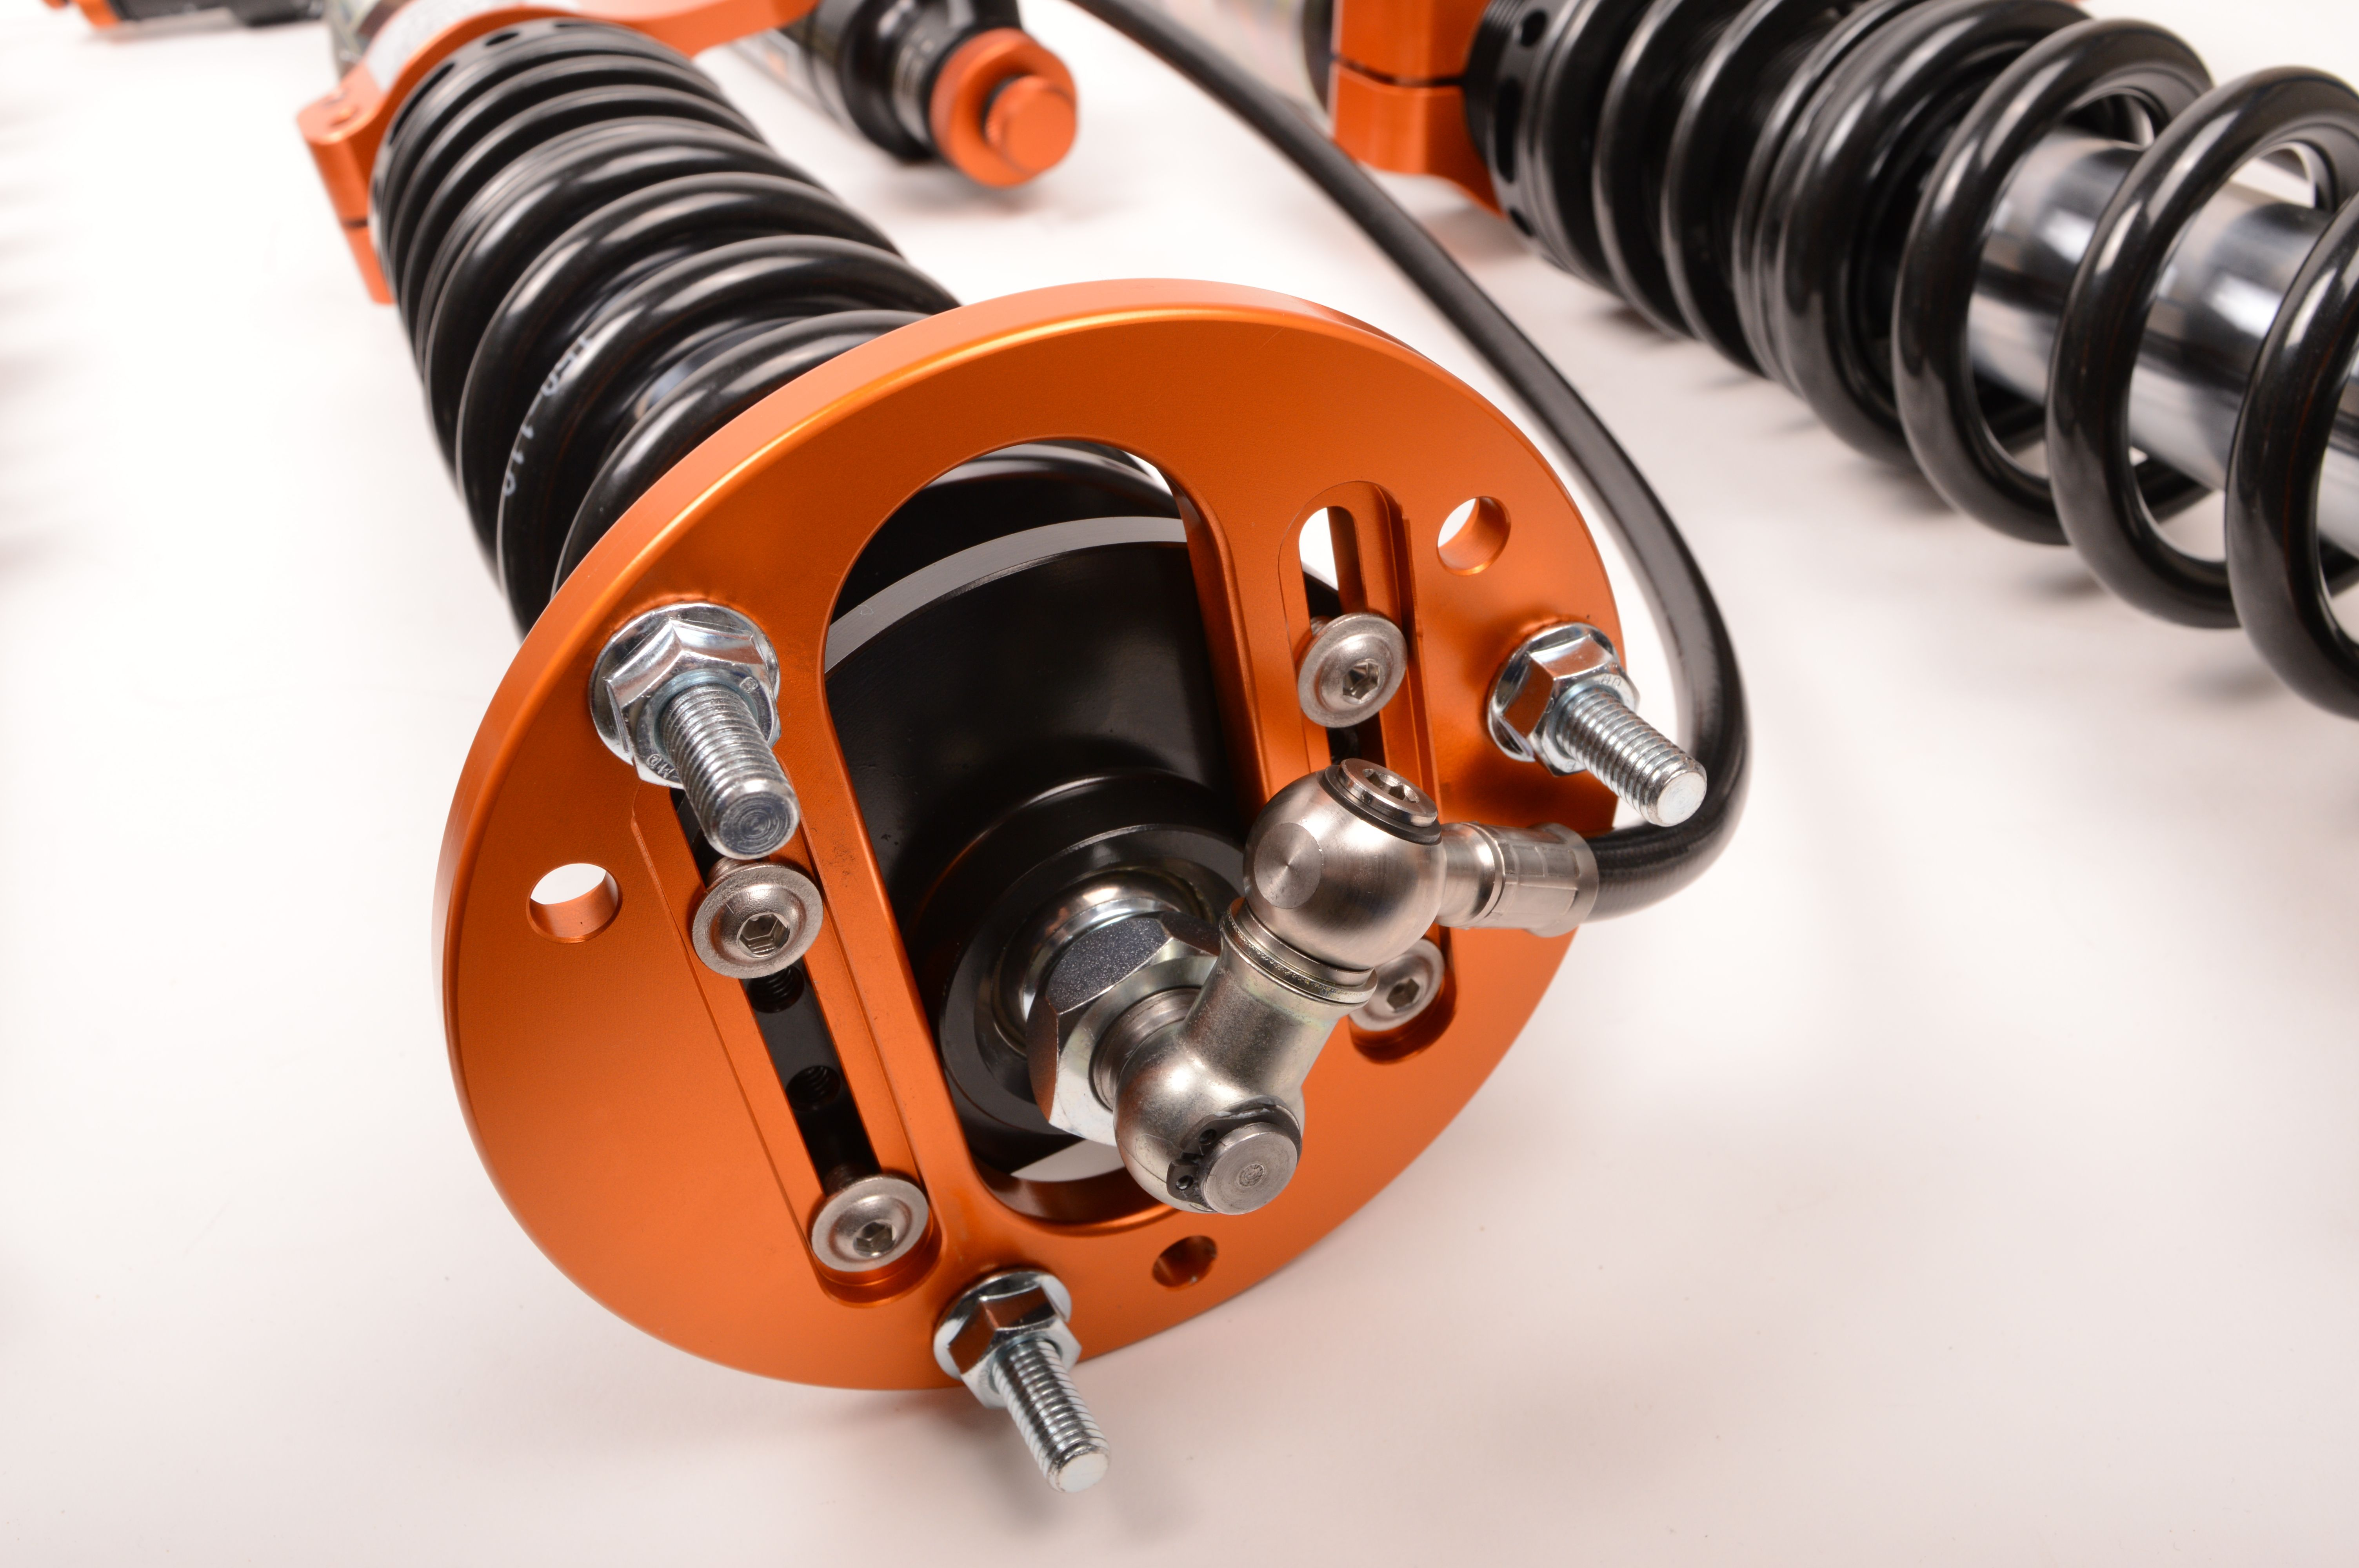 BMW 1M Coupe (2011-2012) AST Suspension 5300 Series (3-way)